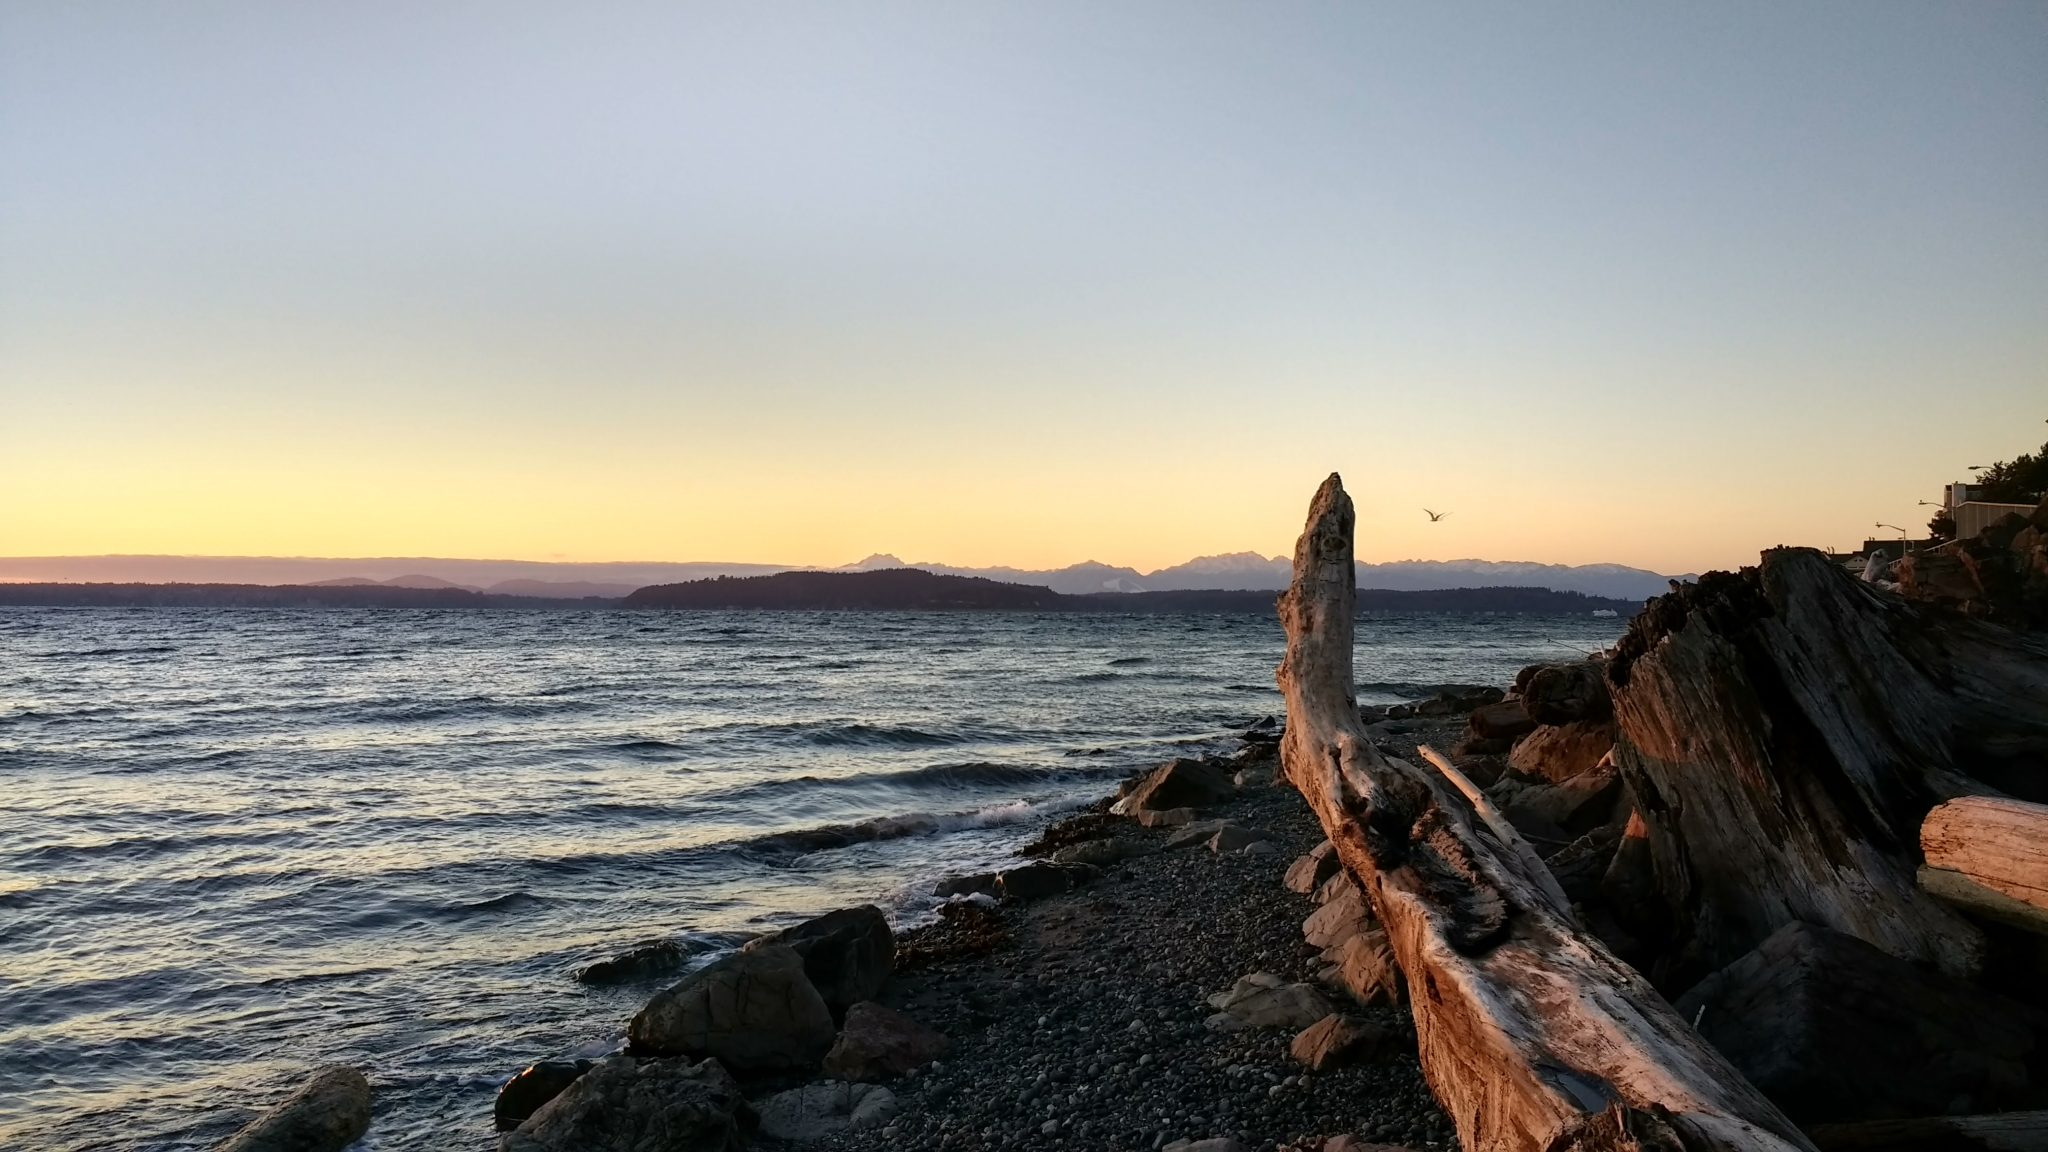 A sunset at the beach with mountains in the distance. A piece of driftwood is in the foreground.